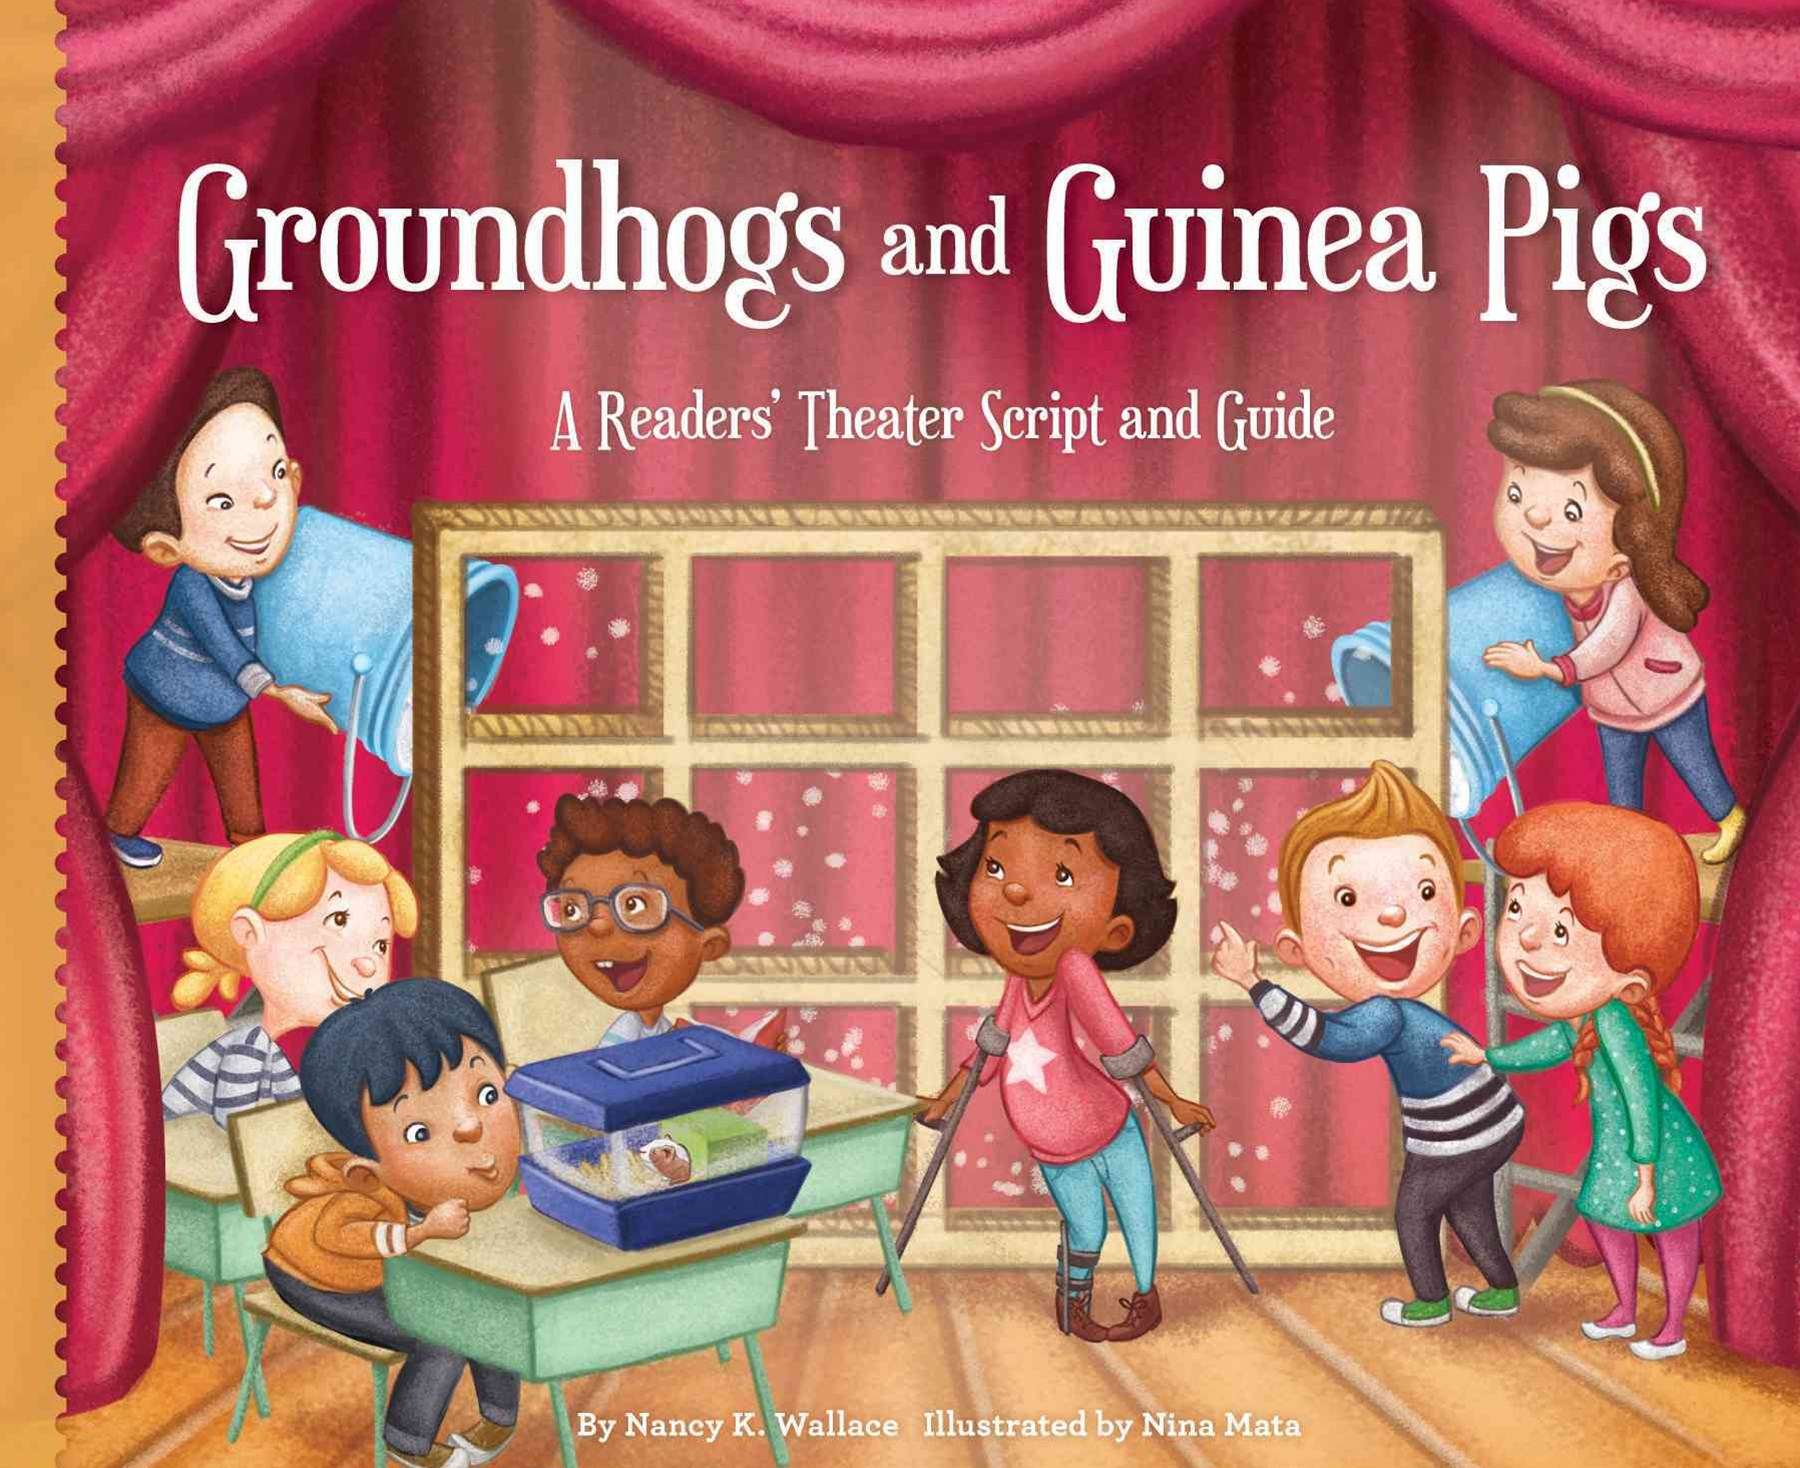 Groundhogs and Guinea Pigs